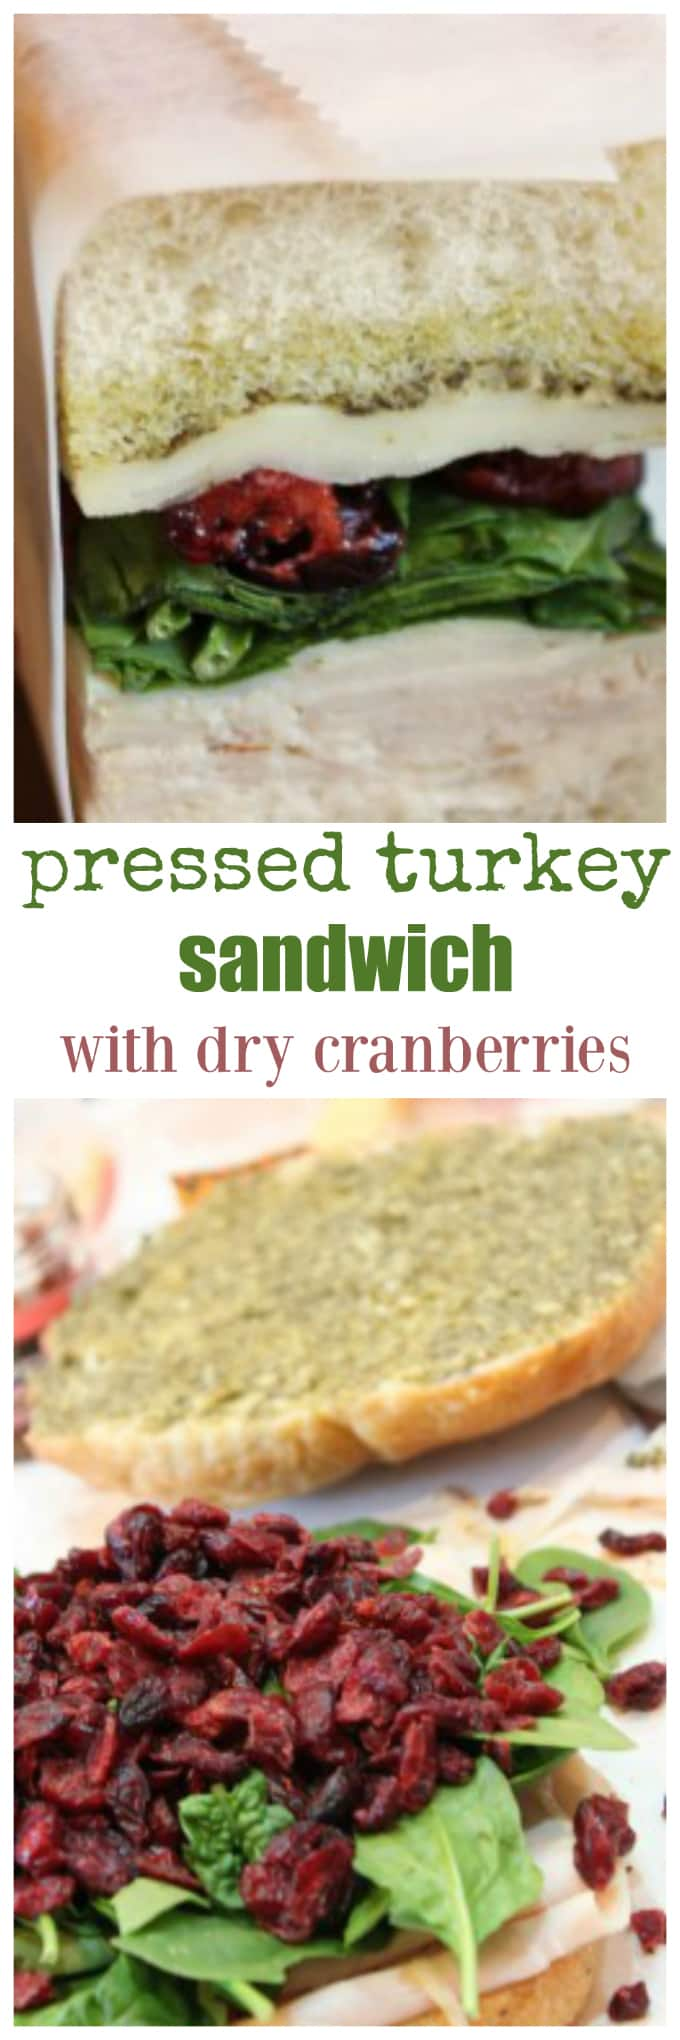 pressed turkey sandwich with dry cranberries, turkey, spinach perfect beach food @createdbydiane